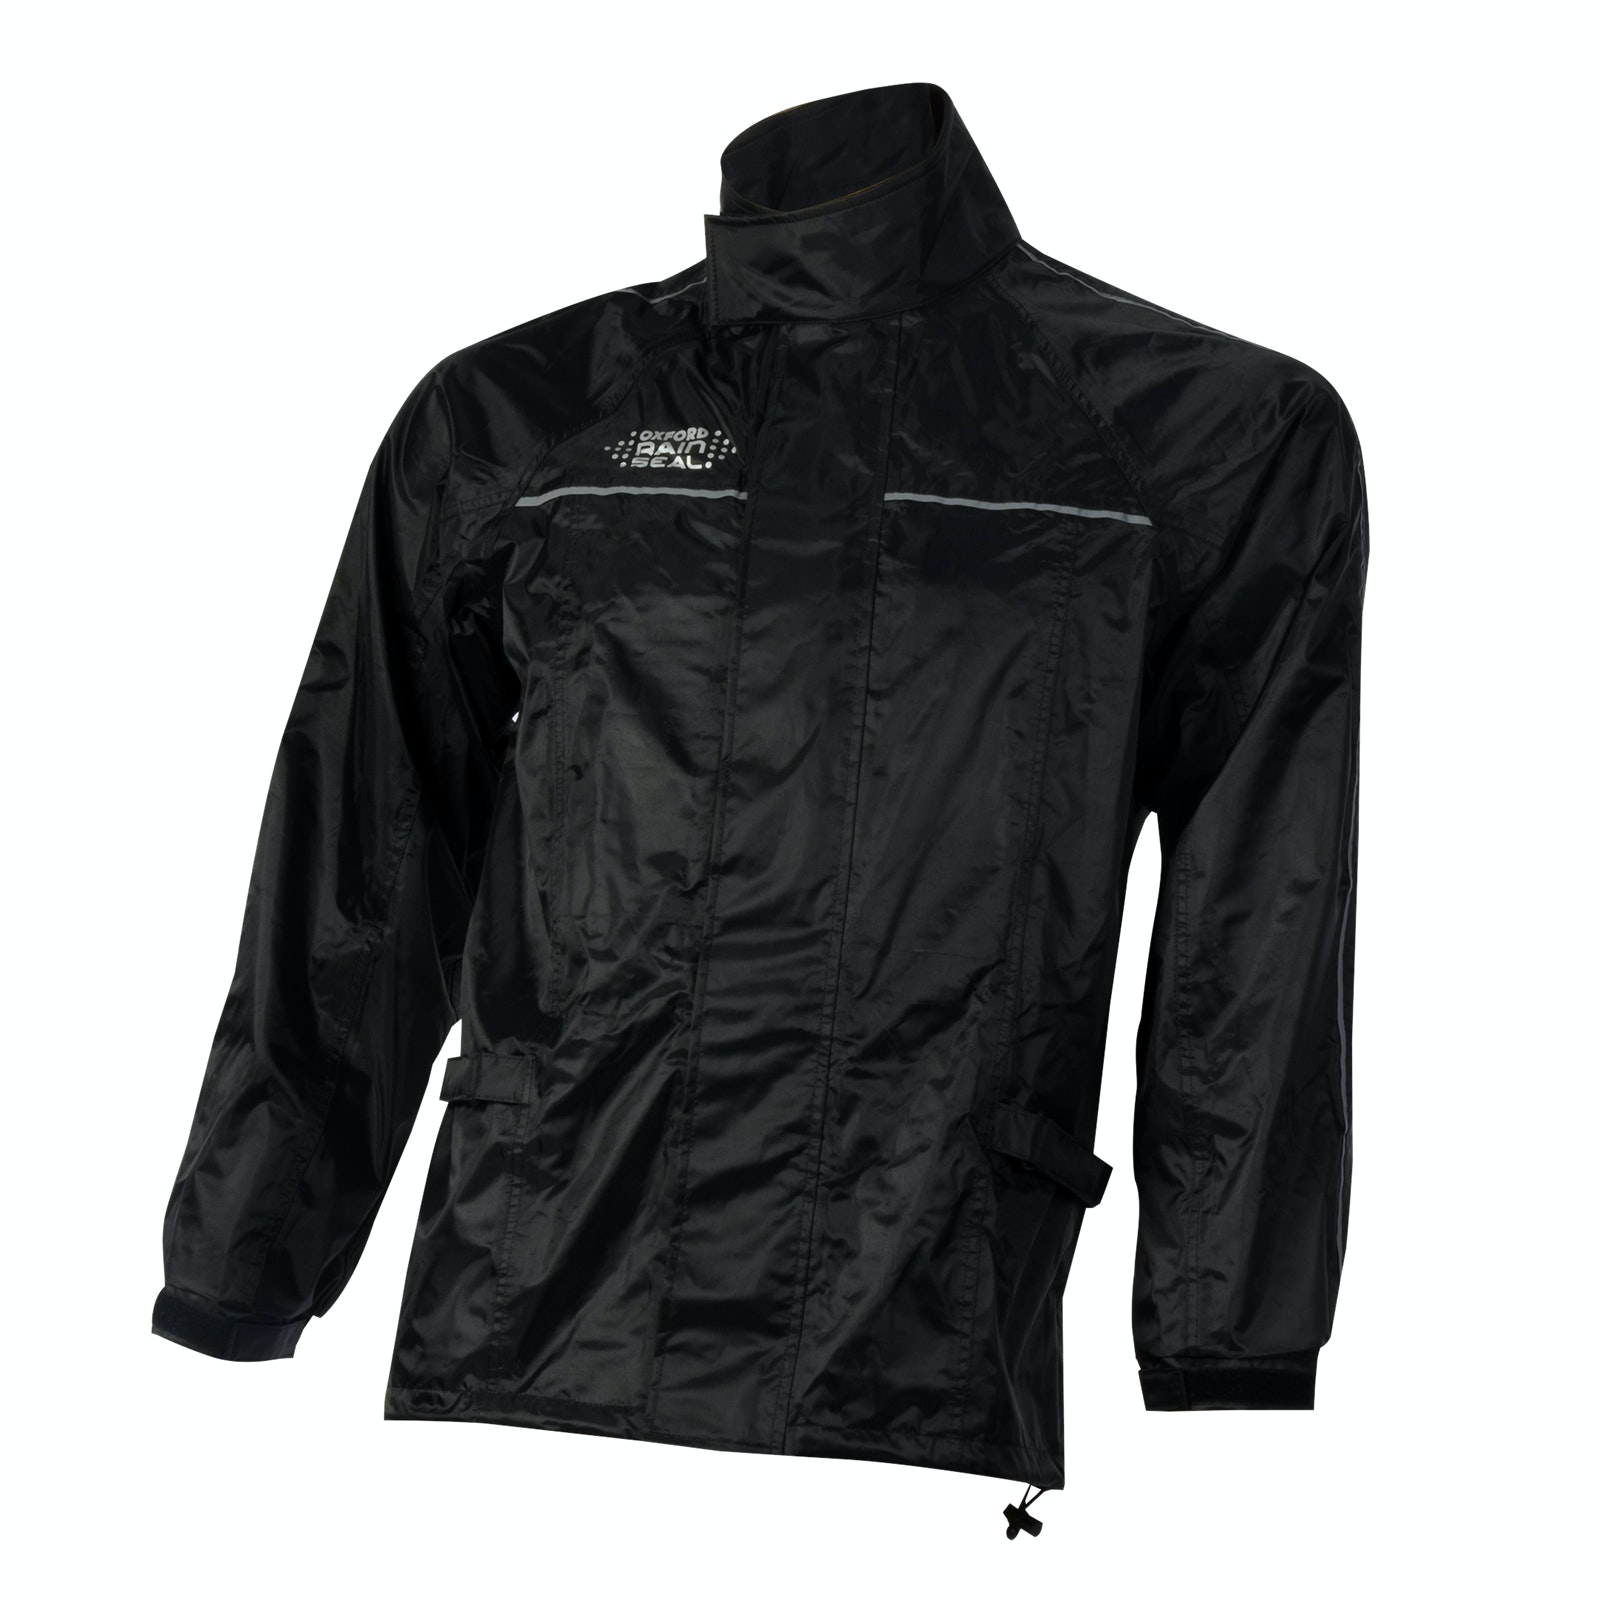 Oxford Rainseal All Weather Kit sweepstakes